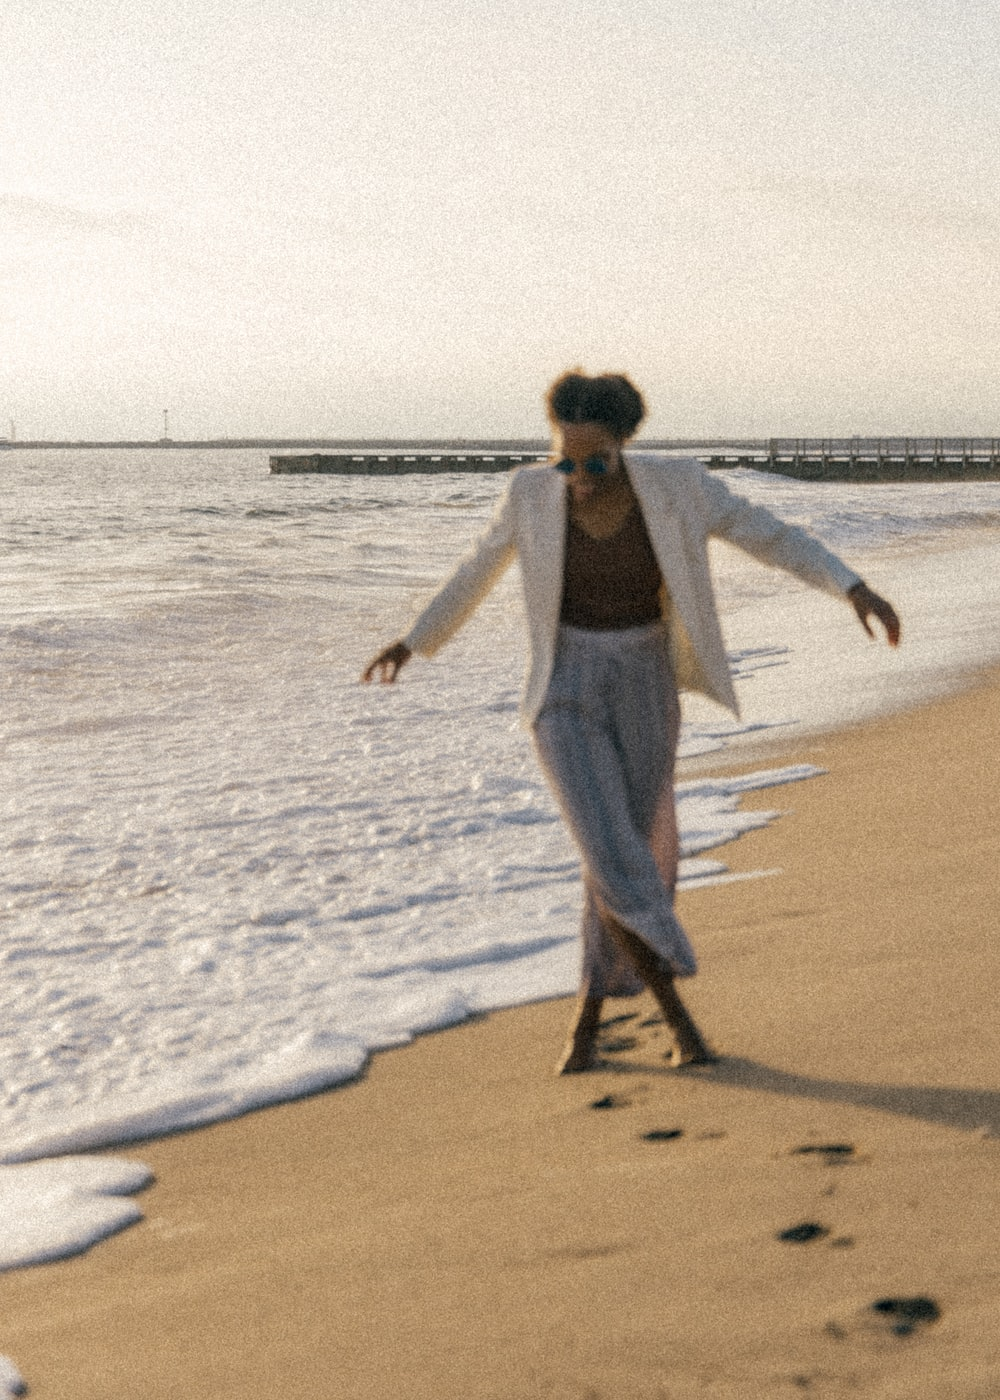 woman in white long sleeve shirt and gray pants walking on beach during daytime